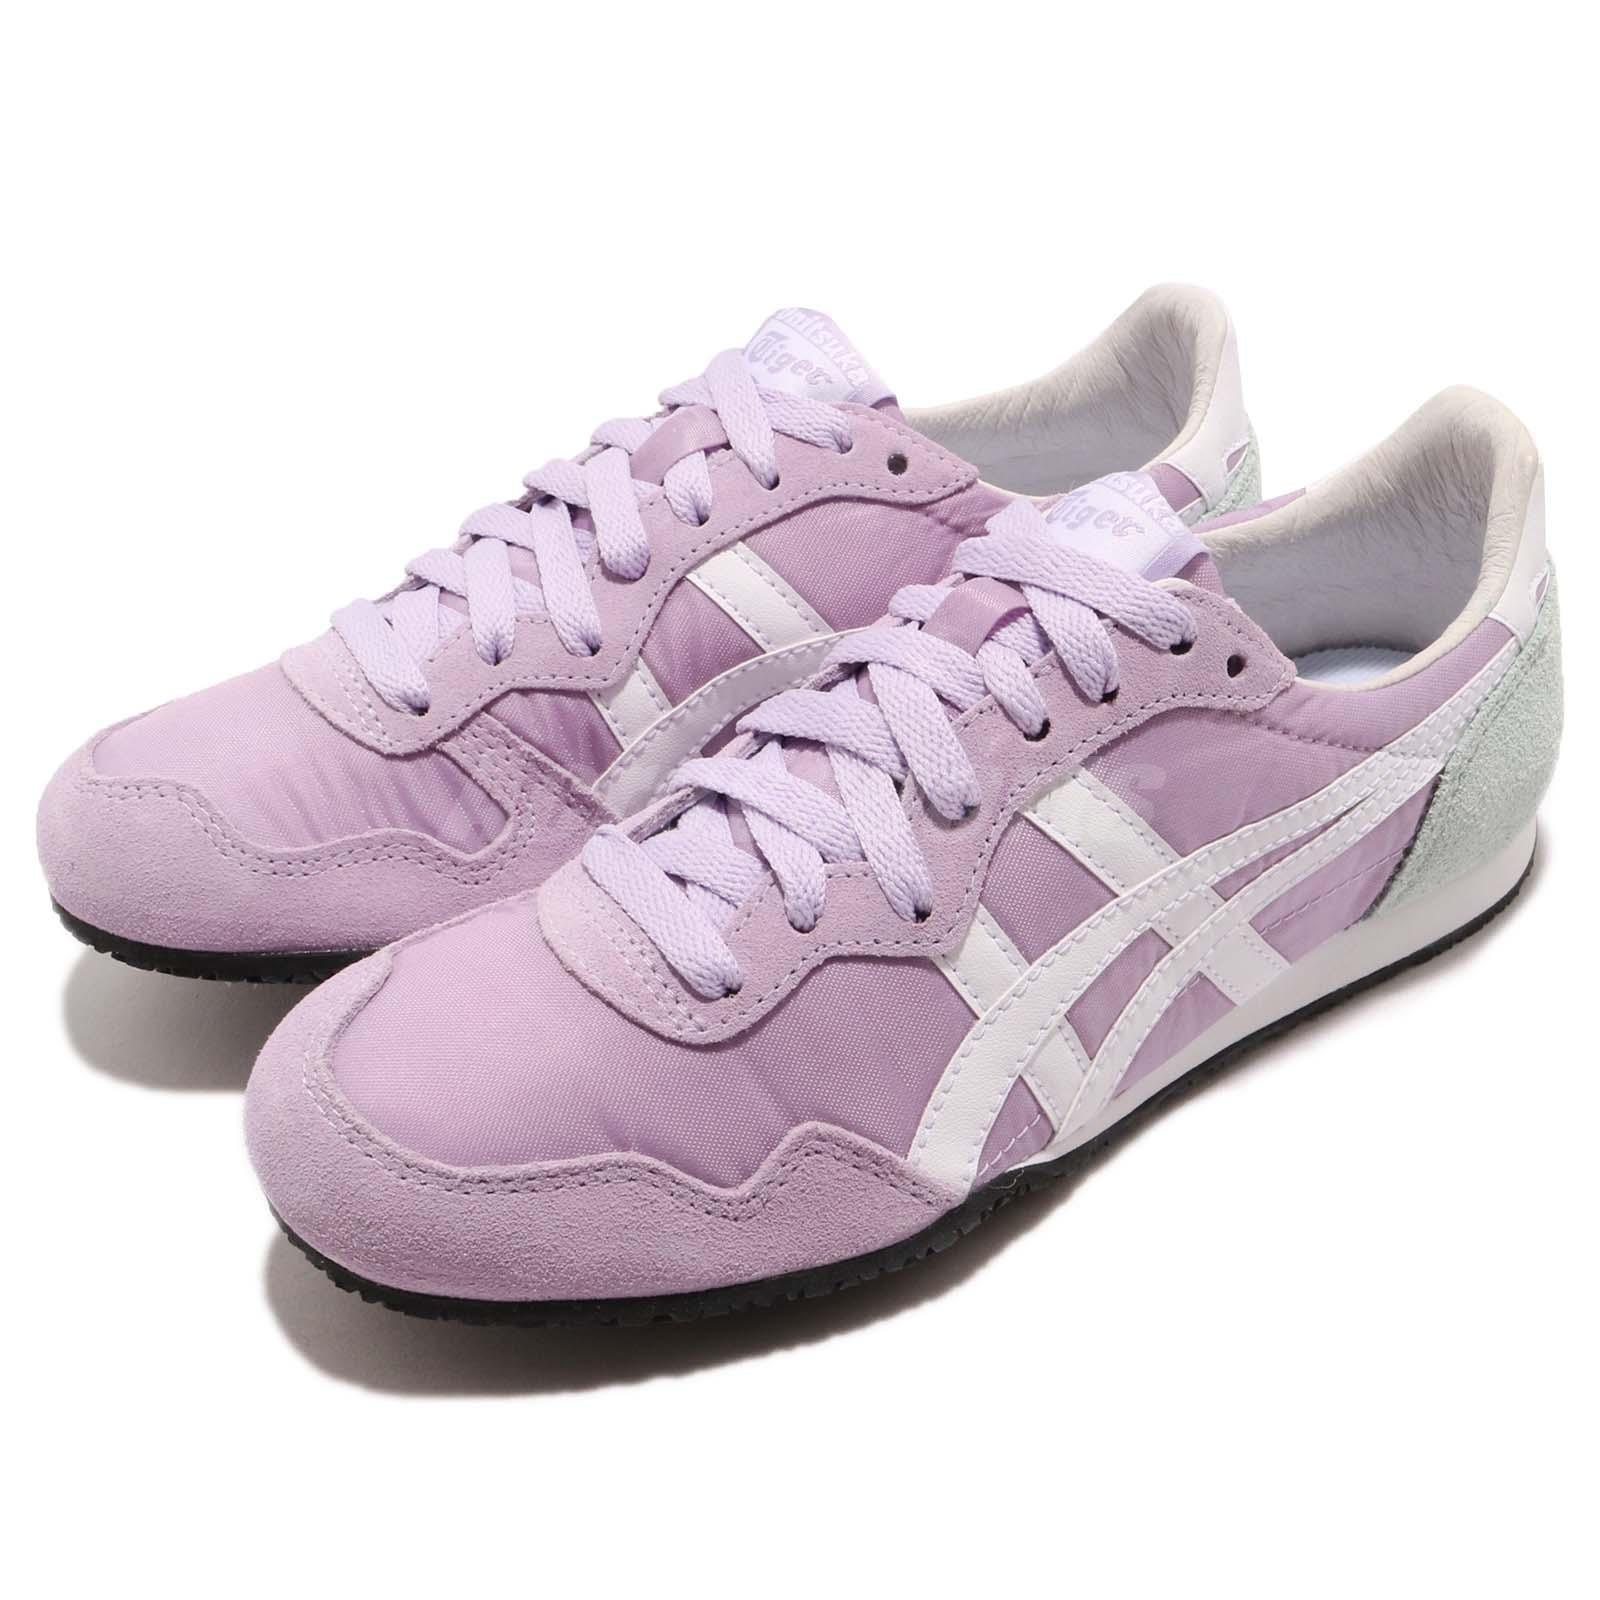 wholesale dealer 4b4c3 ec8bf Details about Asics Onitsuka Tiger Serrano Purple White Women Running Shoes  Sneaker D159L-0119